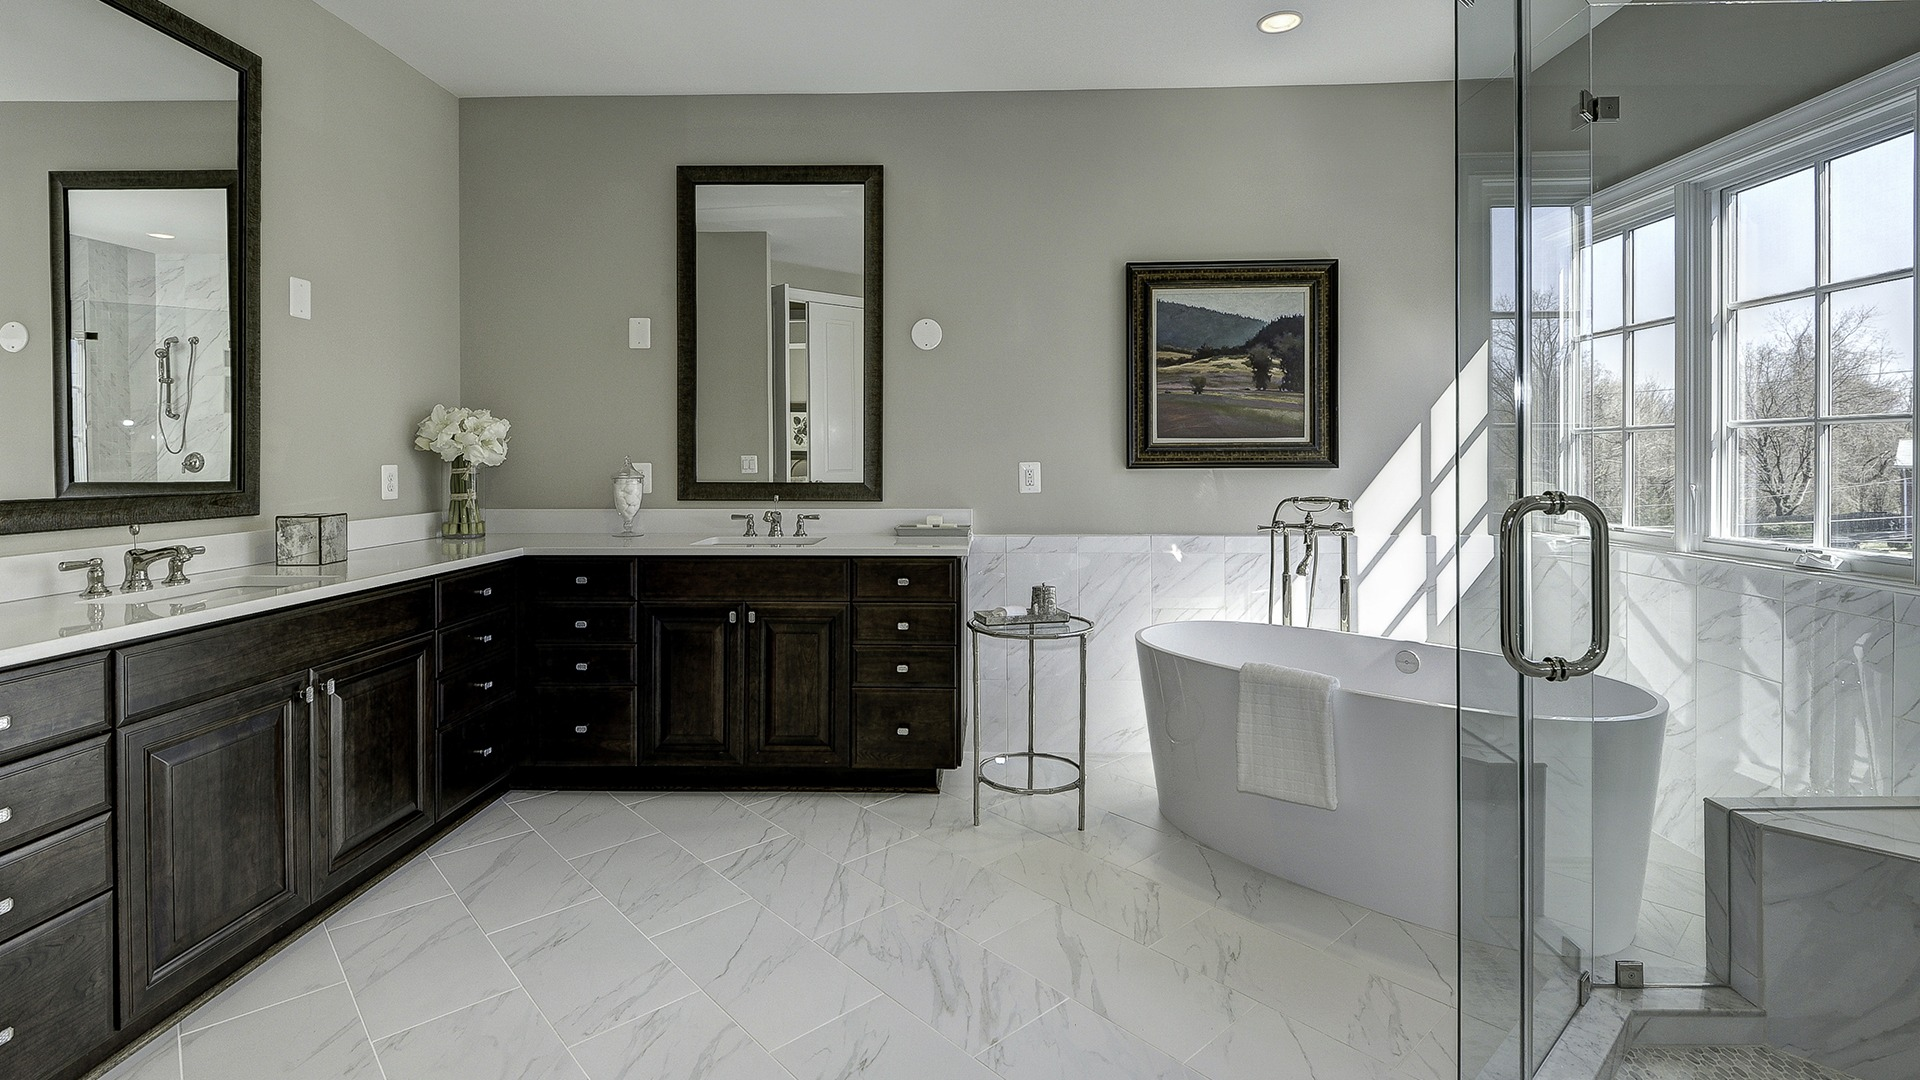 The Owner's Bath in Carper Street, a Gulick | One custom home.